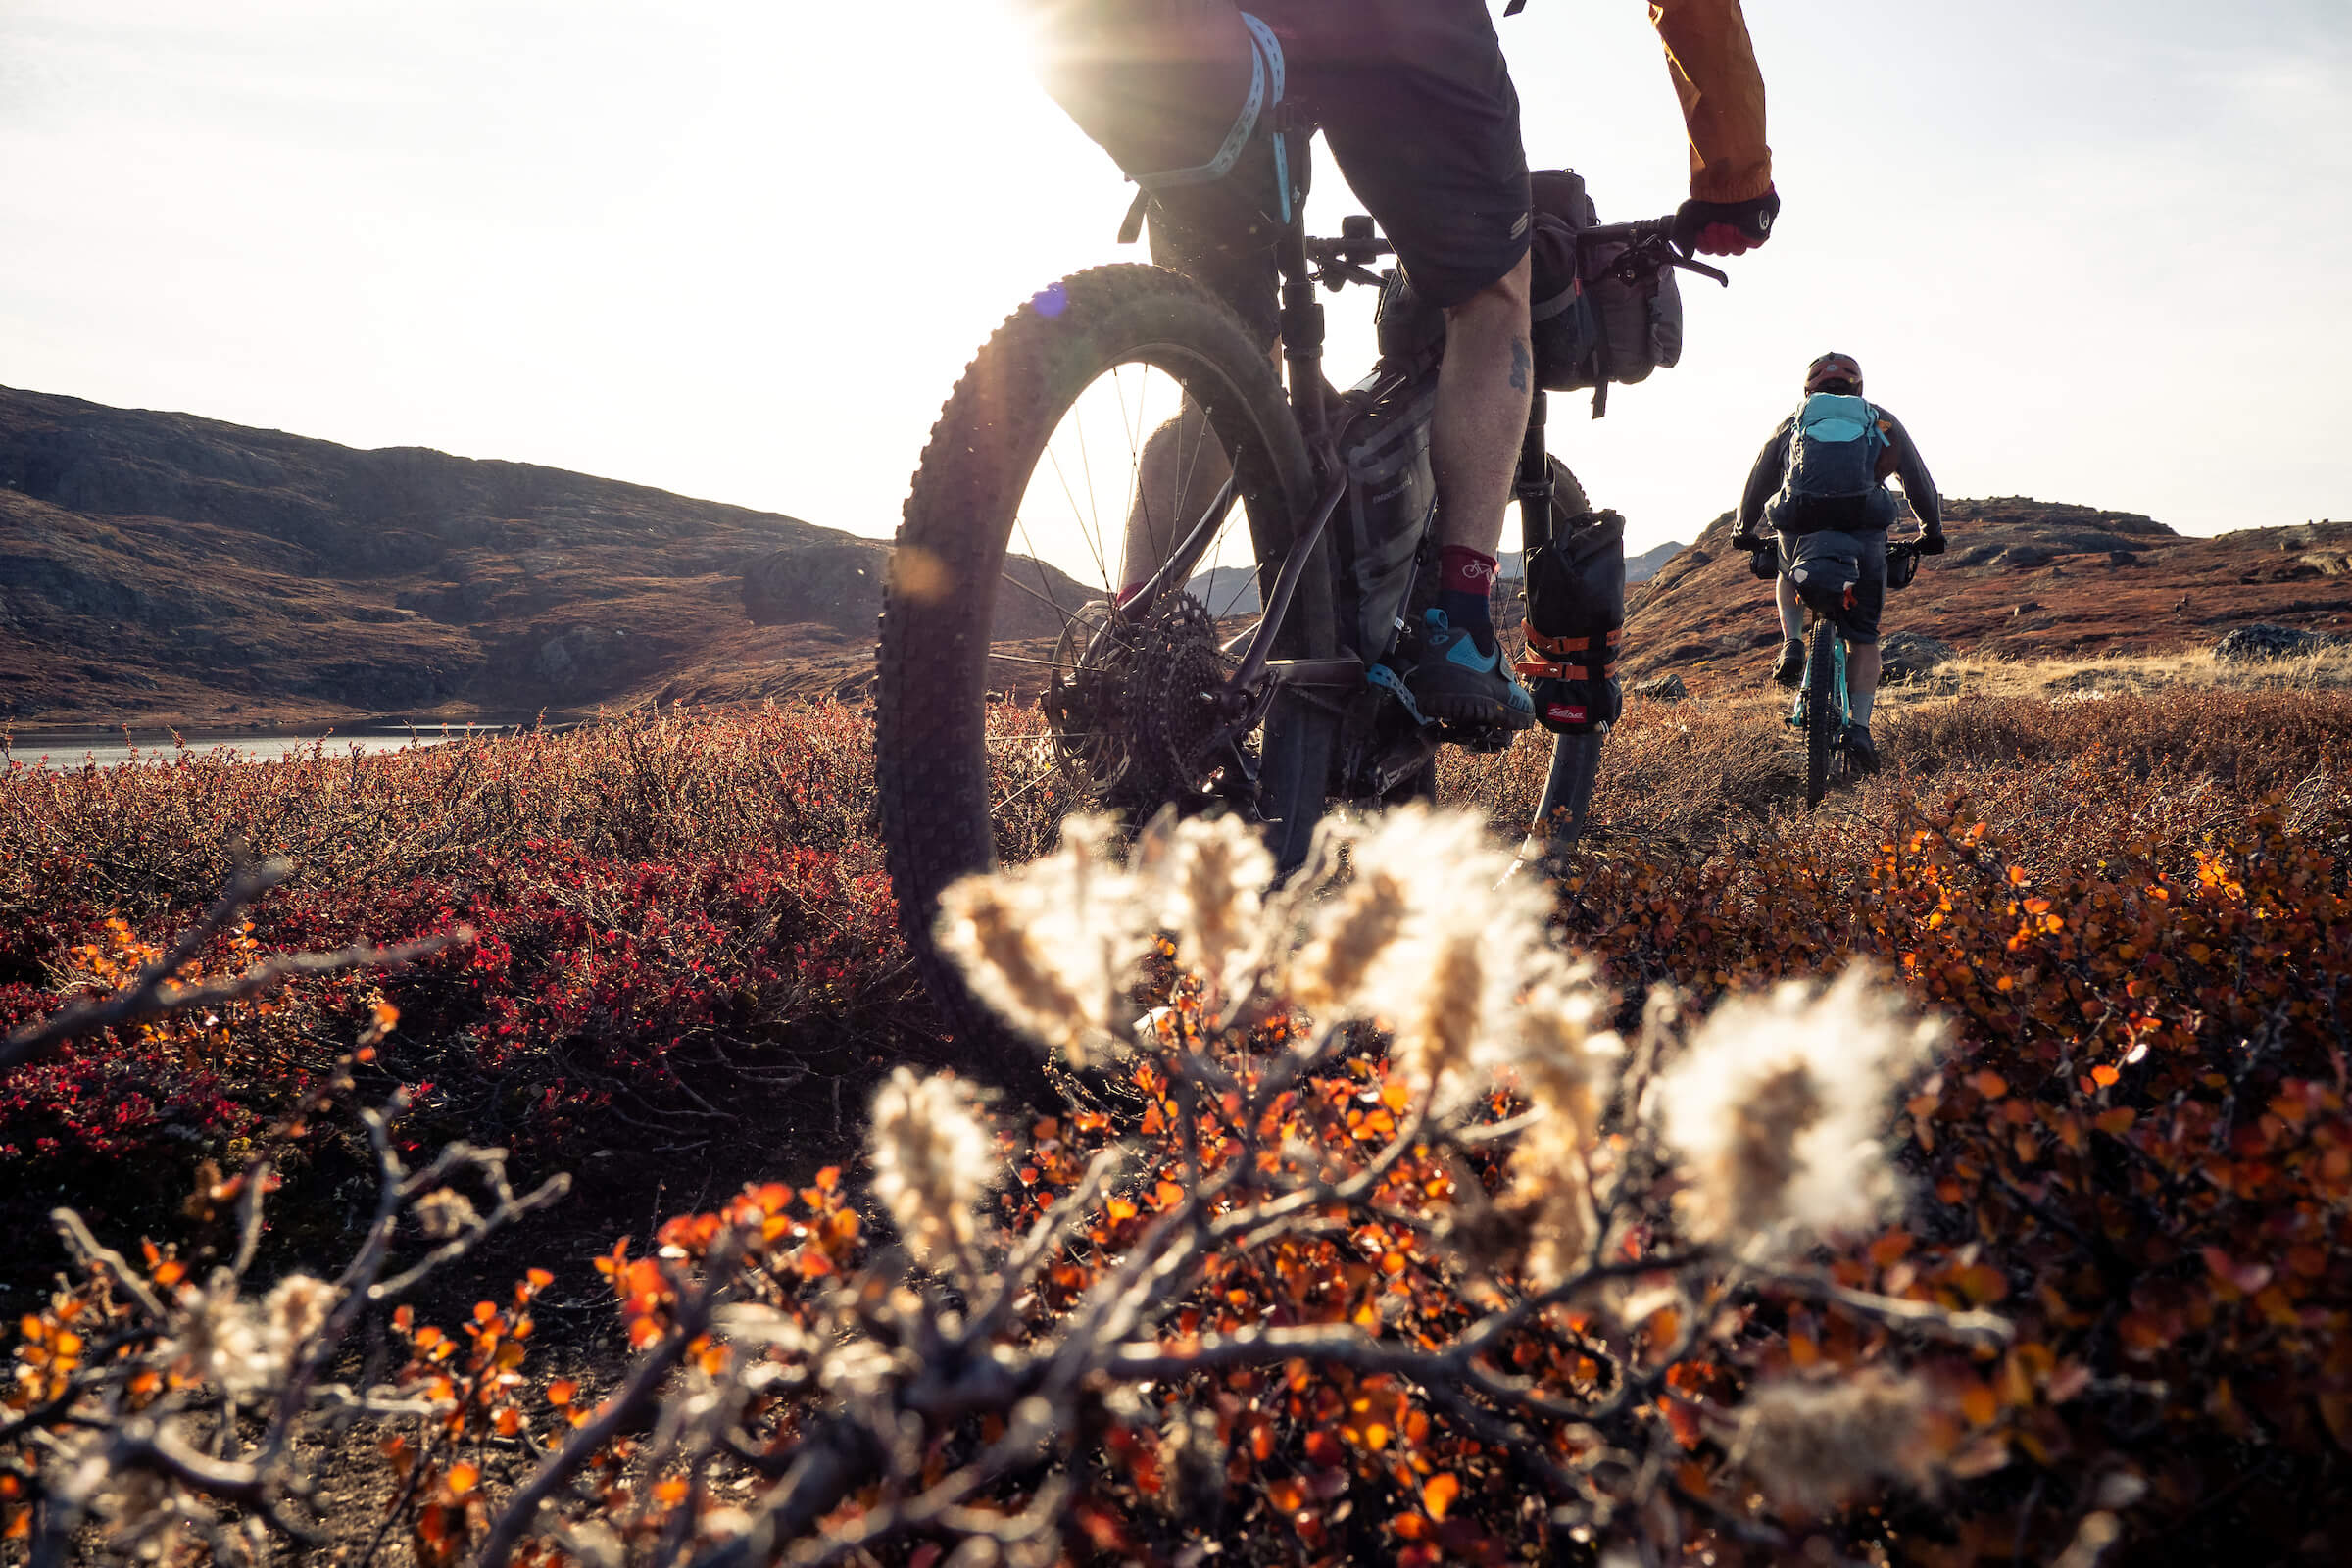 Mountain bikers riding past the fluffy white seeds of a Dwarf Willow illuminated in the low autumn sun along the Arctic Circle Trail. Arctic Circle Trail, West Greenland. Photo by Ben Haggar - Visit Greenland